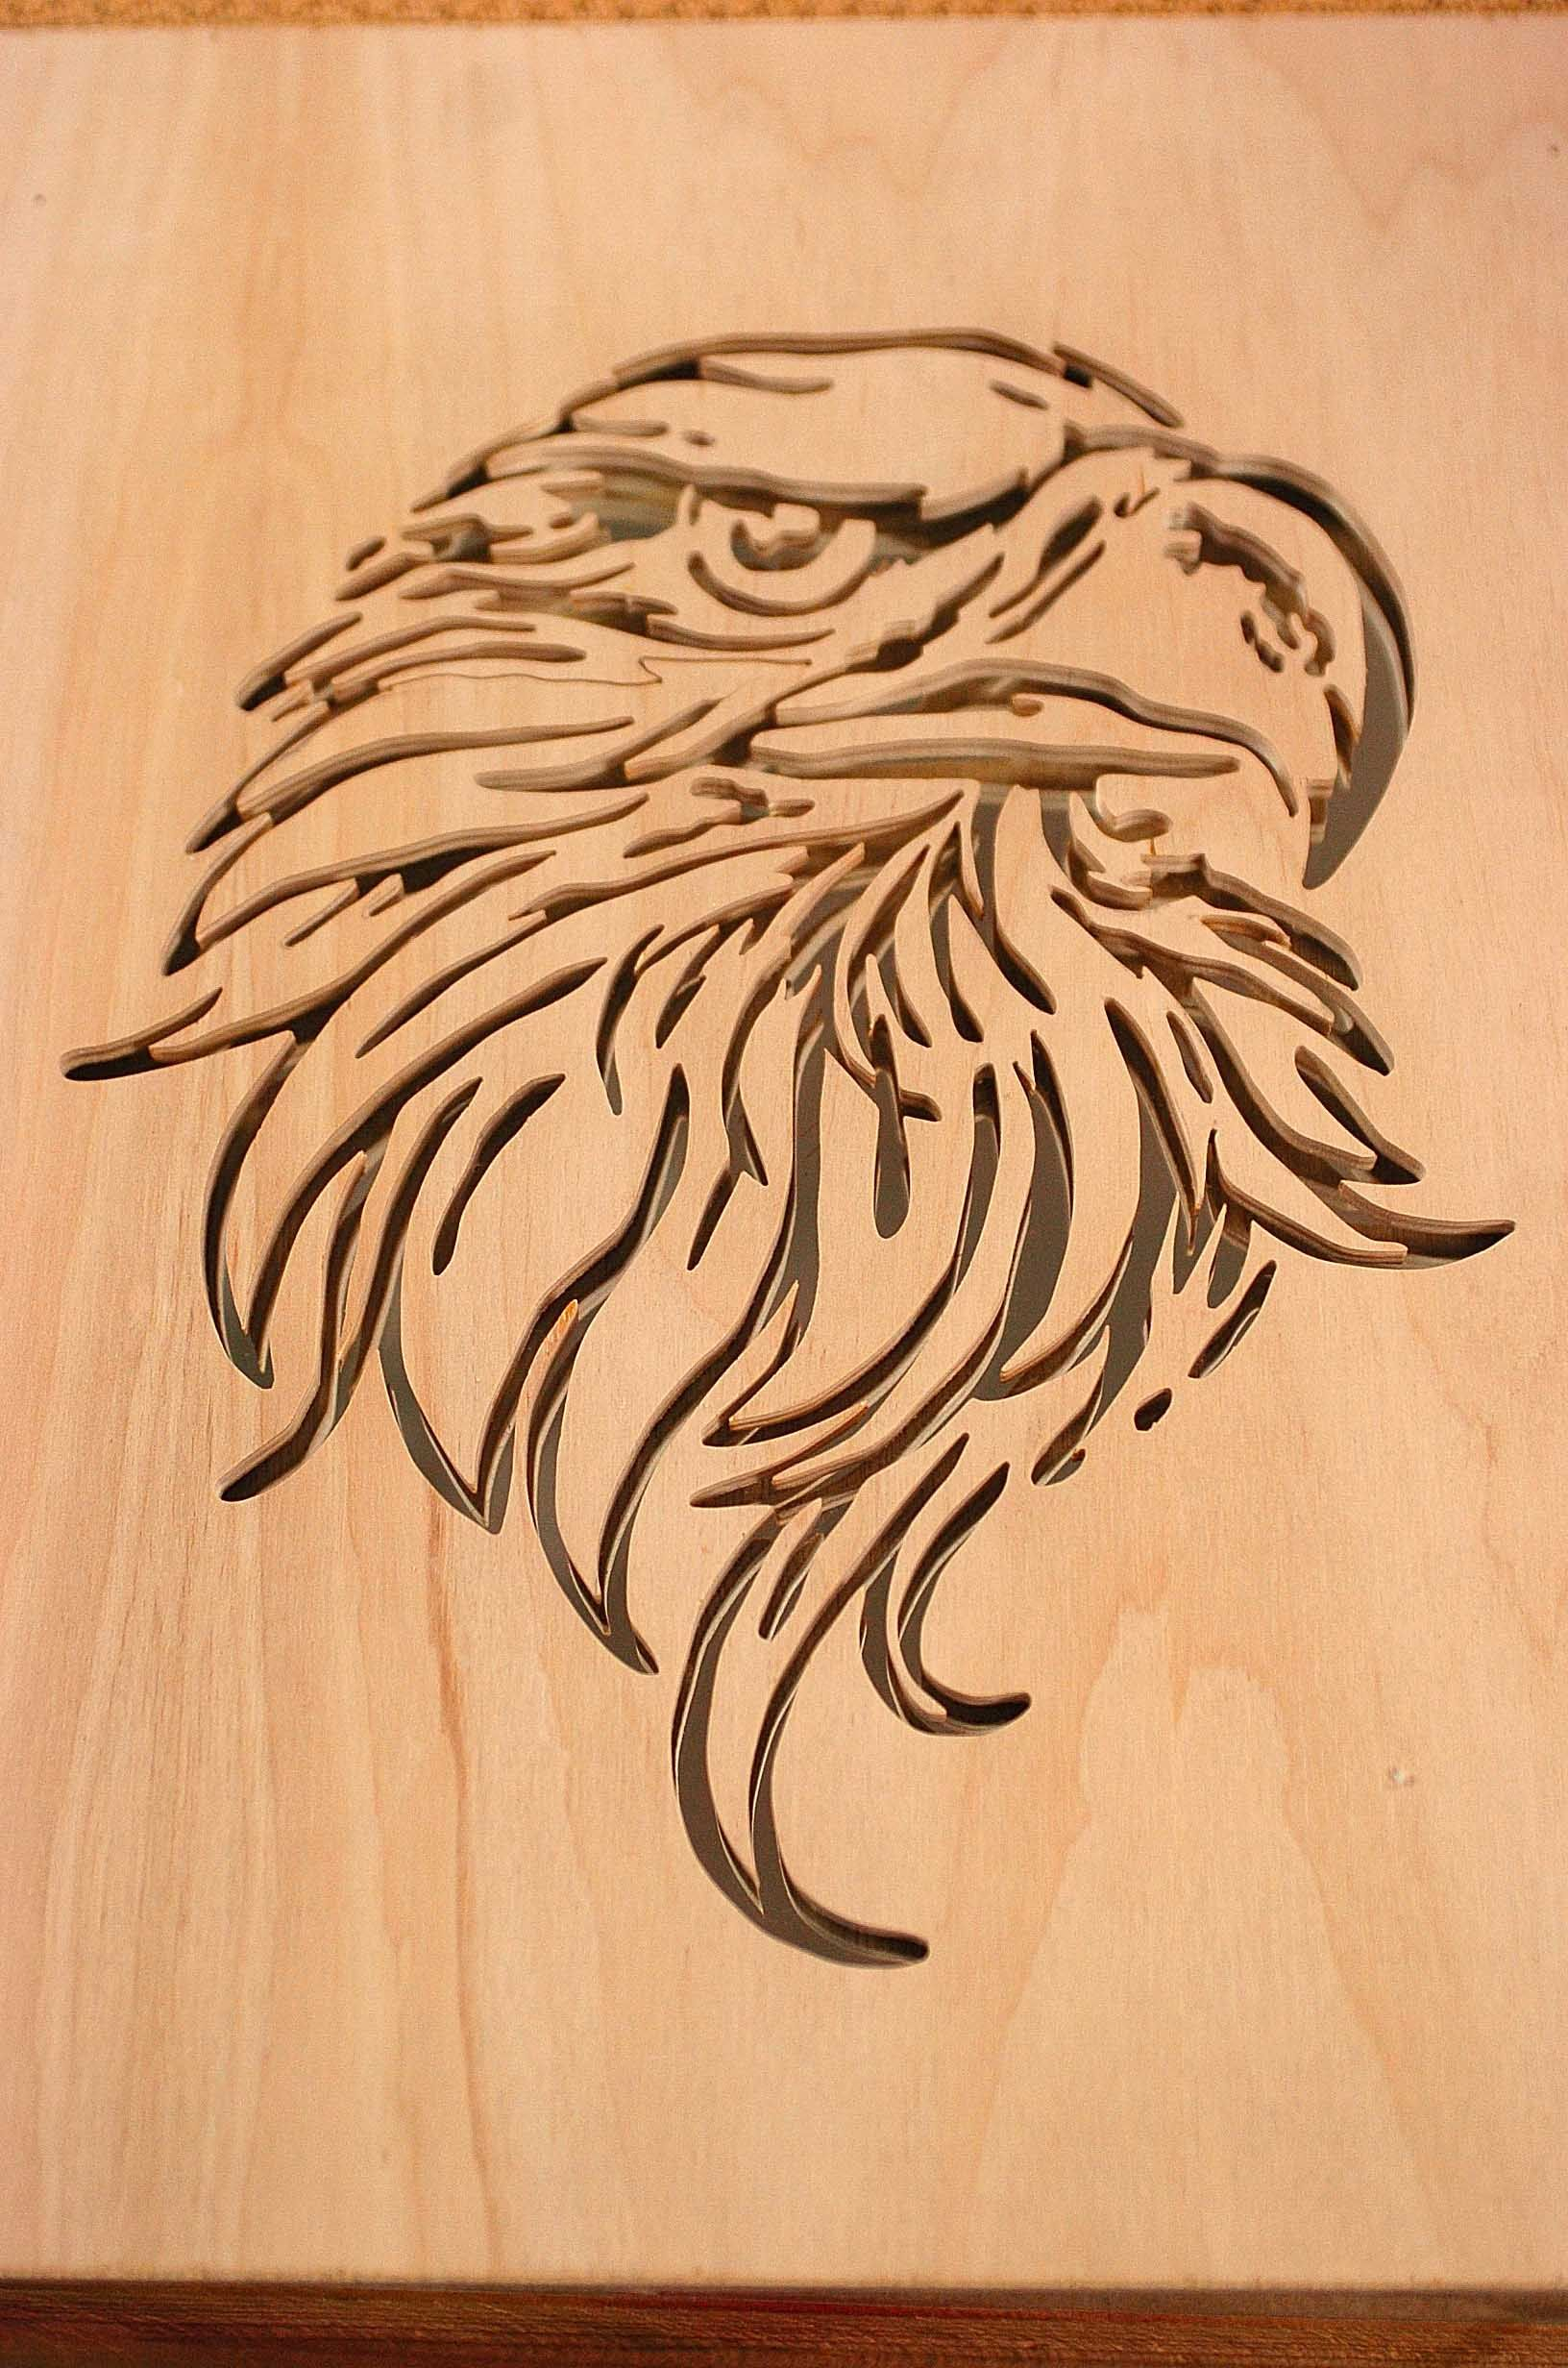 Pin by Virinchi on Projects to Try | Pinterest | Eagle, Woodcarving ...